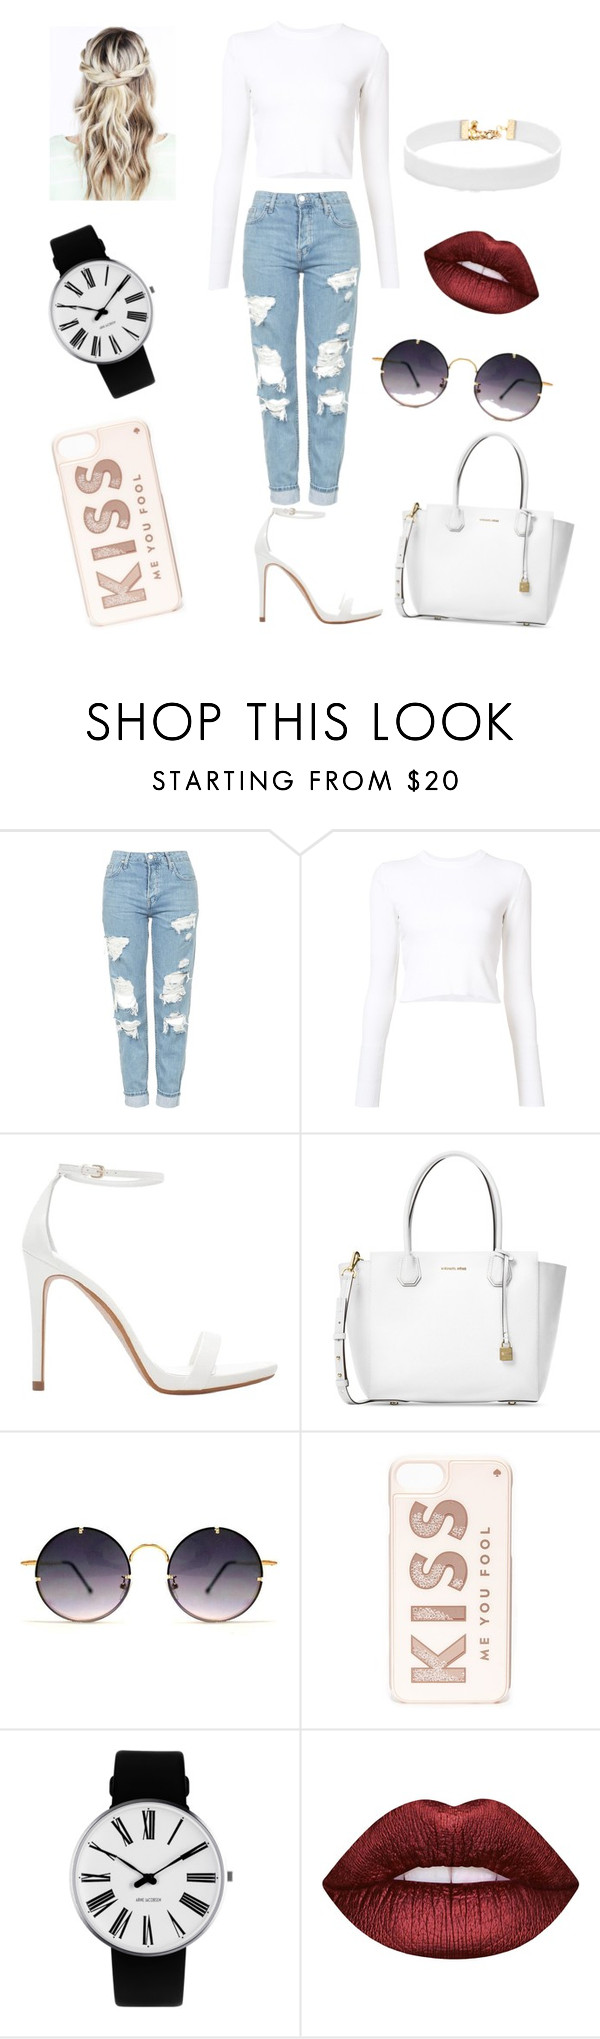 """""""Untitled #80"""" by kaela-baby ❤ liked on Polyvore featuring Topshop, Proenza Schouler, Zara, Michael Kors, Spitfire, Kate Spade, Rosendahl, Lime Crime and Vanessa Mooney"""